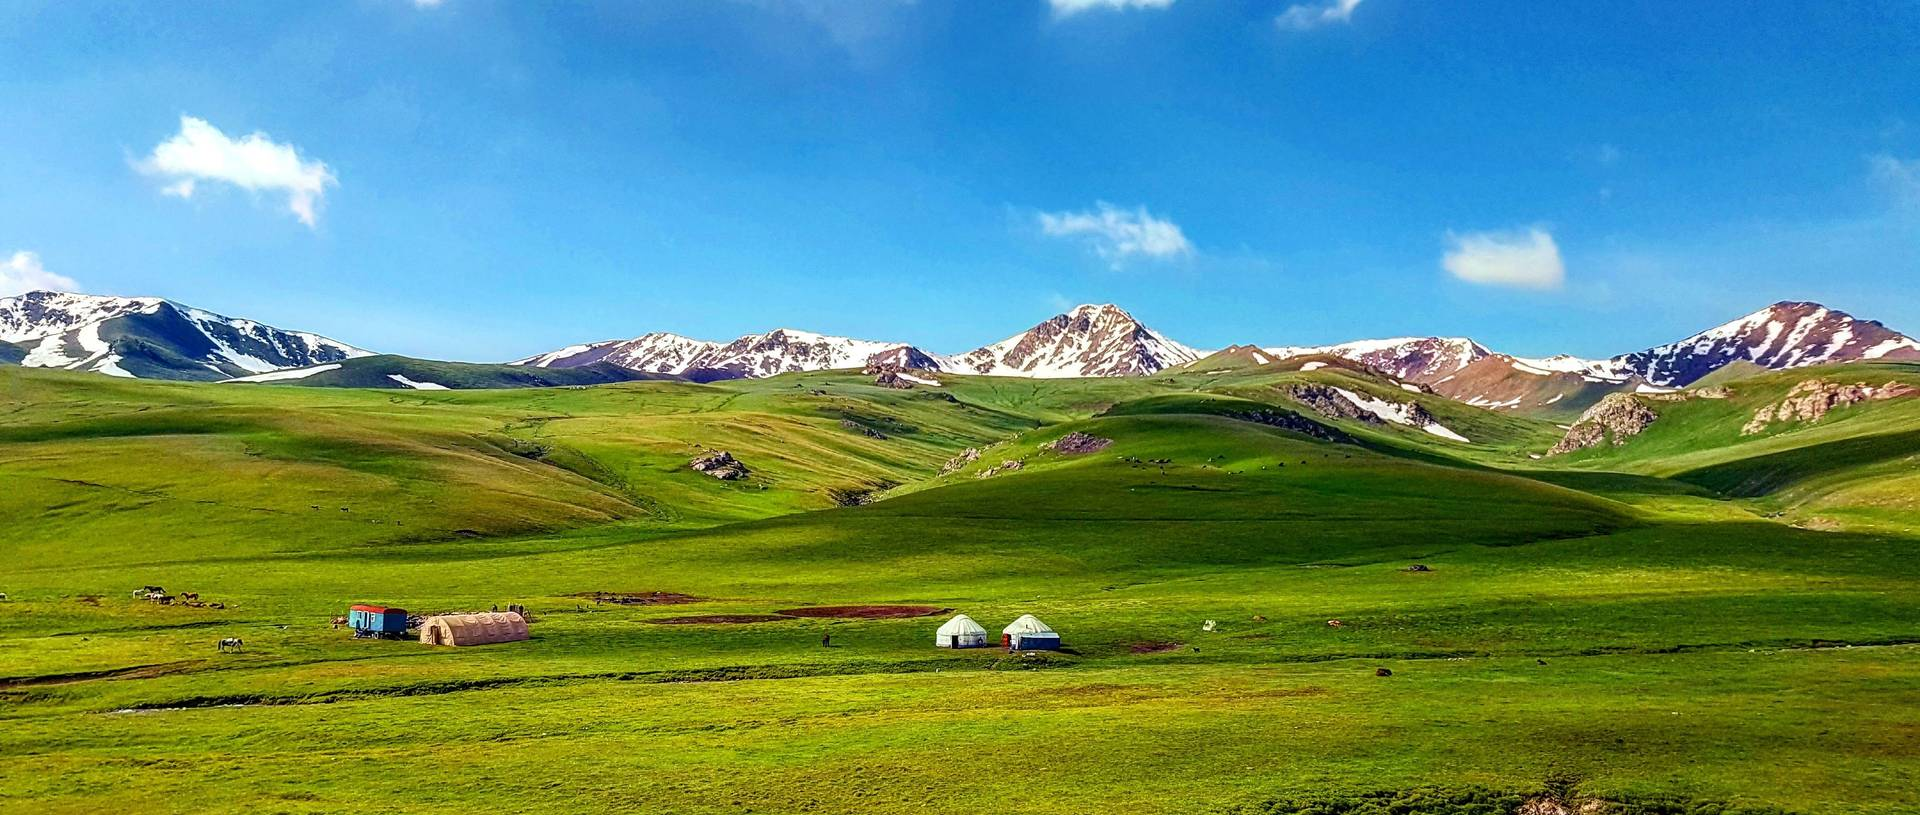 Nomadic Yurt Camp in Lake Song kol, Kyrgyzstan